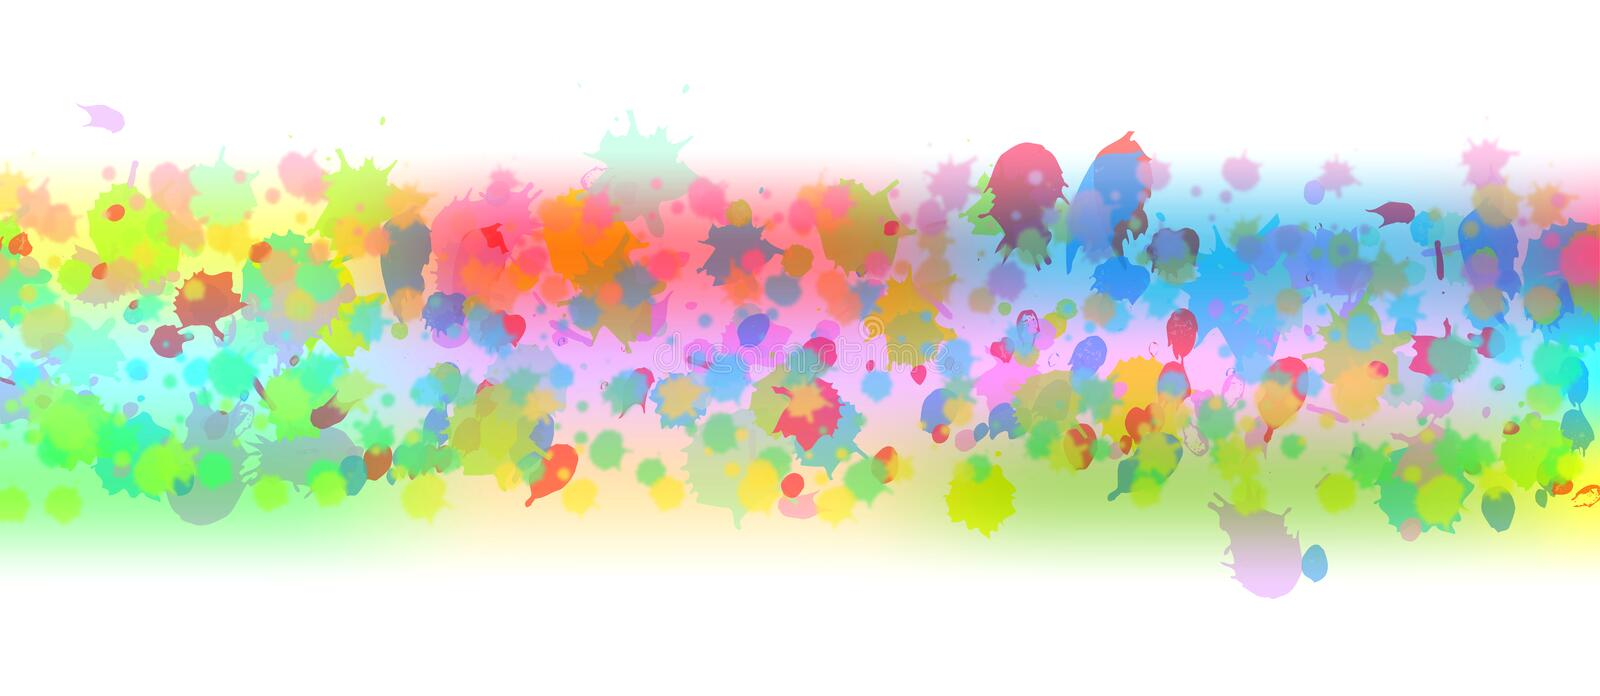 Abstract Vector Colorful Watercolor Spatters Banner stock illustration